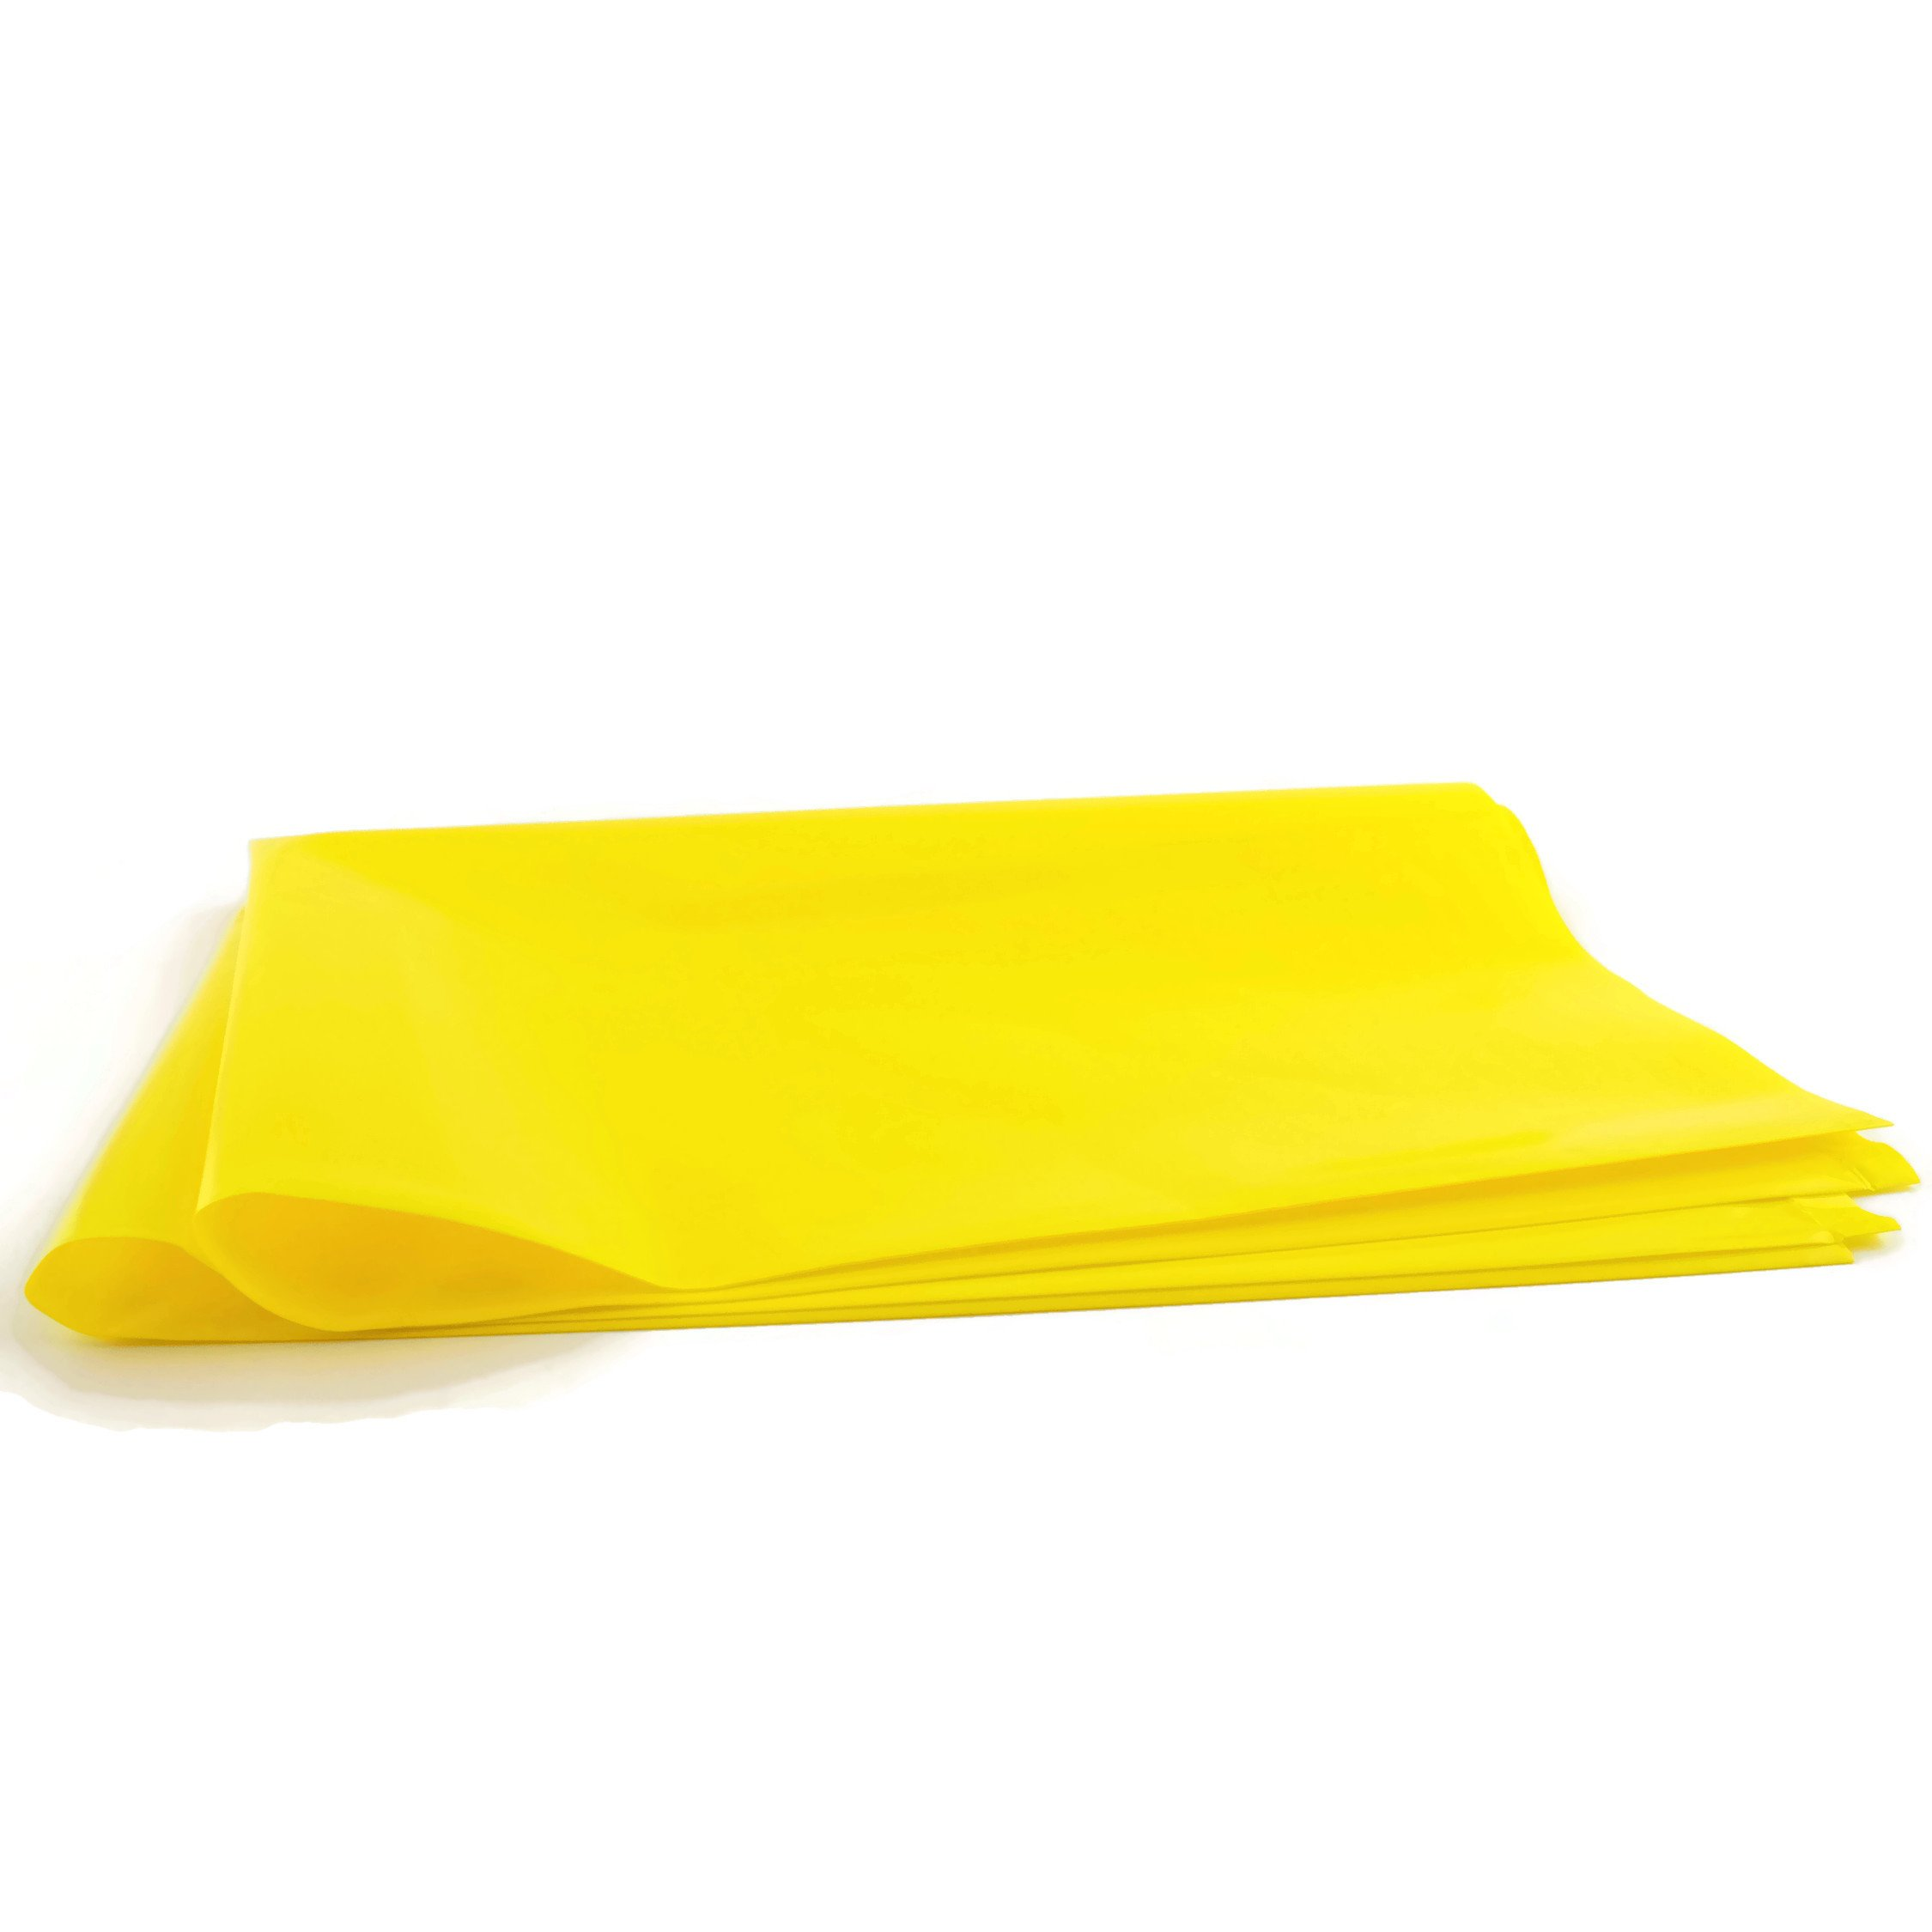 Radioactive Waste Disposal Bags, 4 Mil Thick, 18 x 24 Inches, Yellow Opaque, Unprinted, 25 per Package by RPI